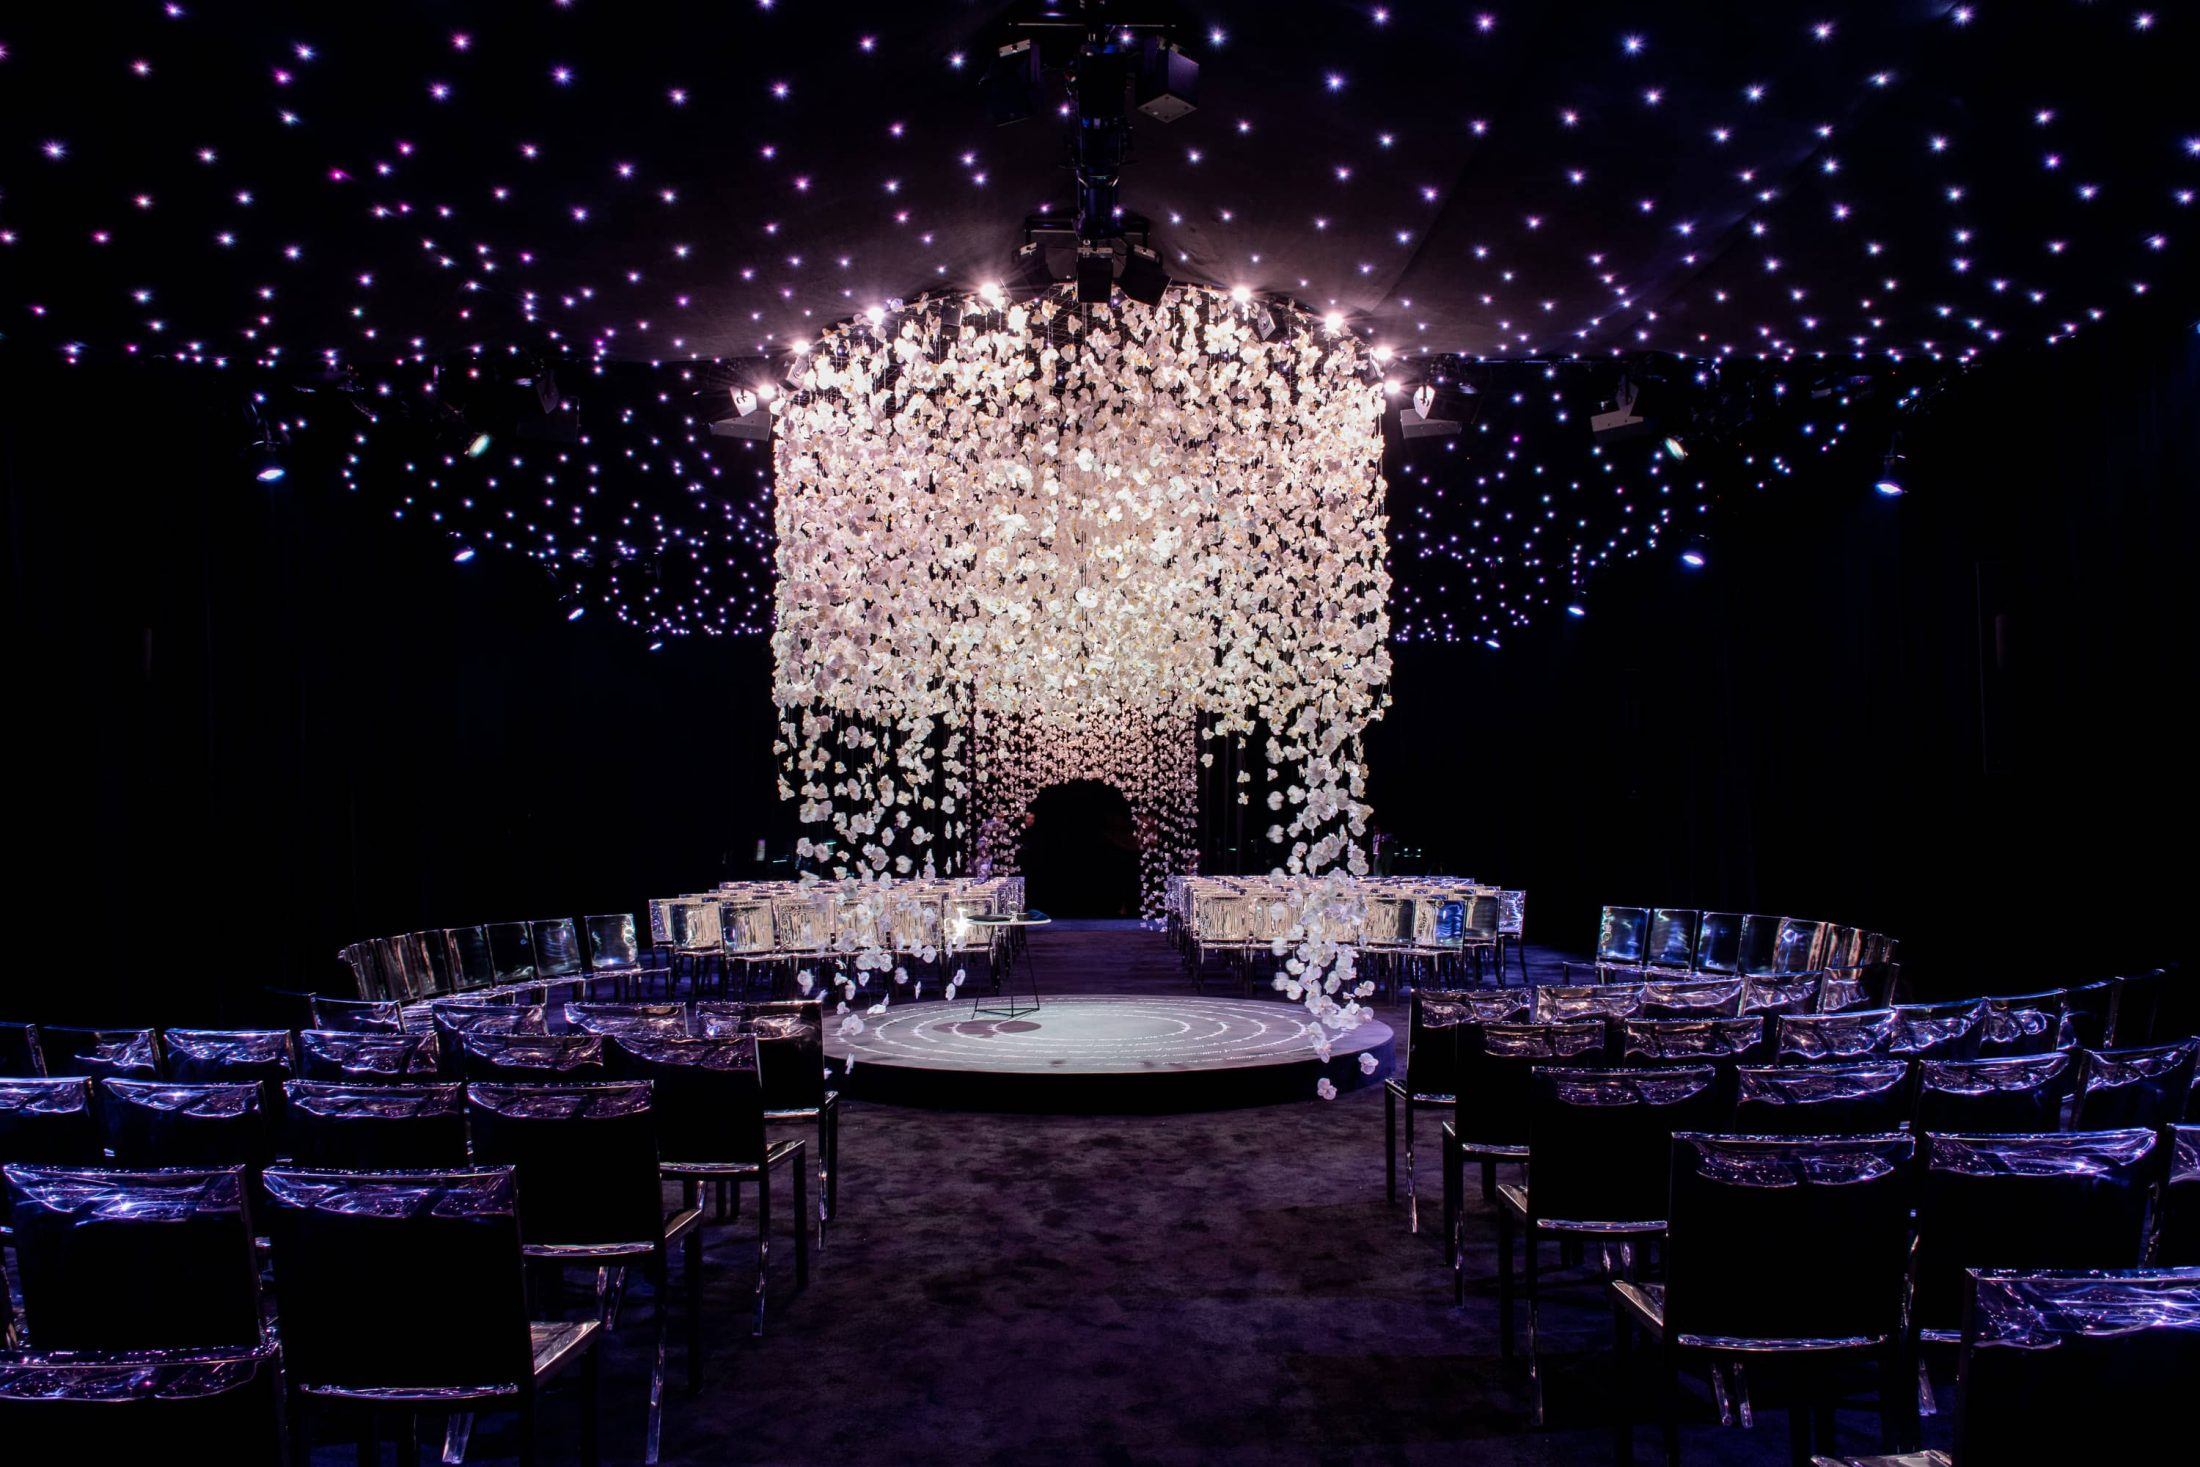 Chuppah made of hanging white orchids at this NYE wedding in New York City | Photo by Gruber Photo